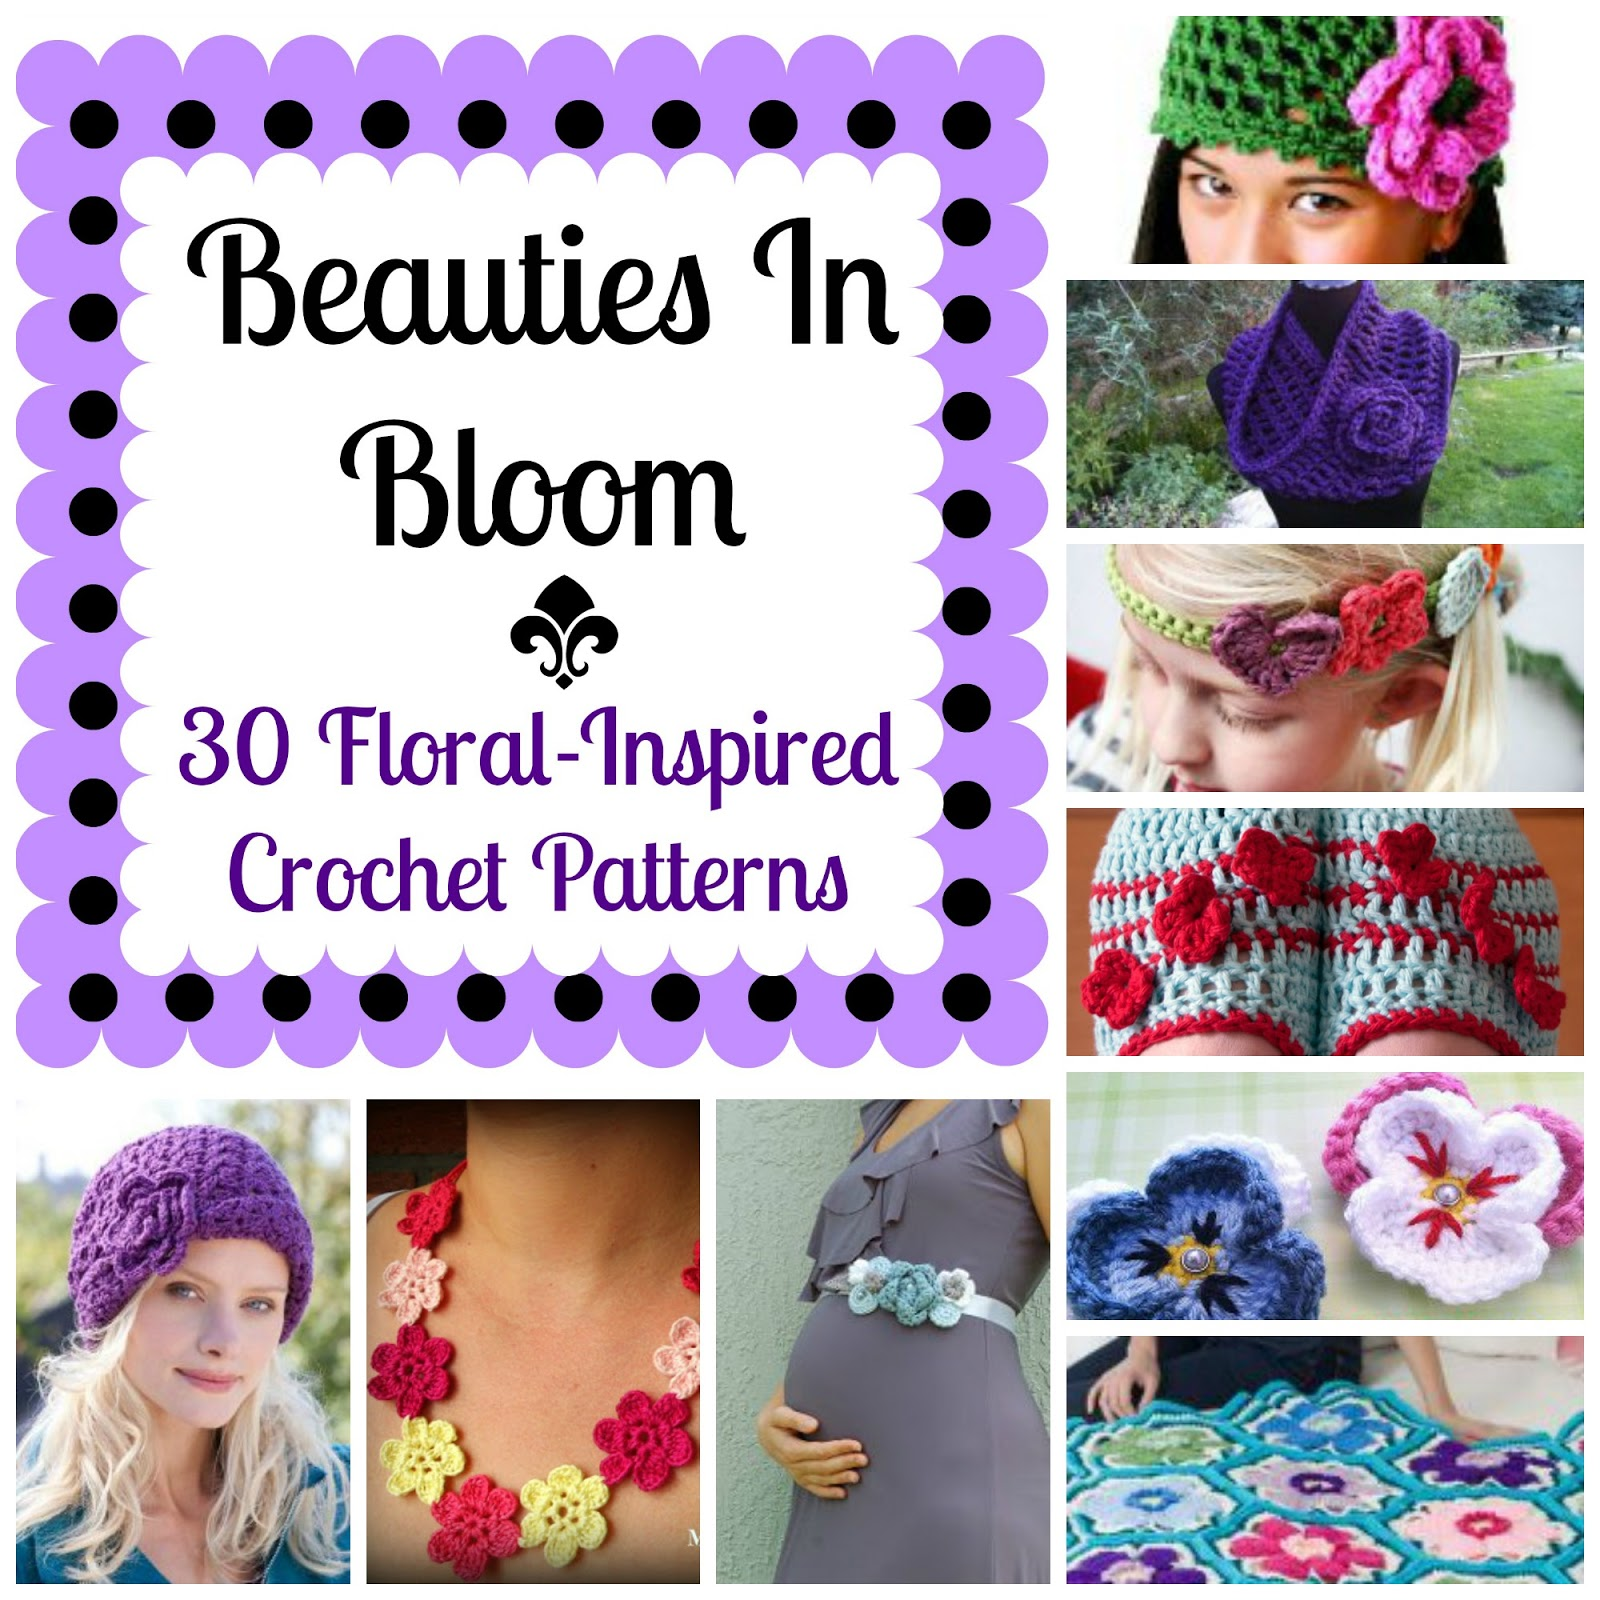 Beauties in Bloom: 30 Floral-Inspired Crochet Patterns